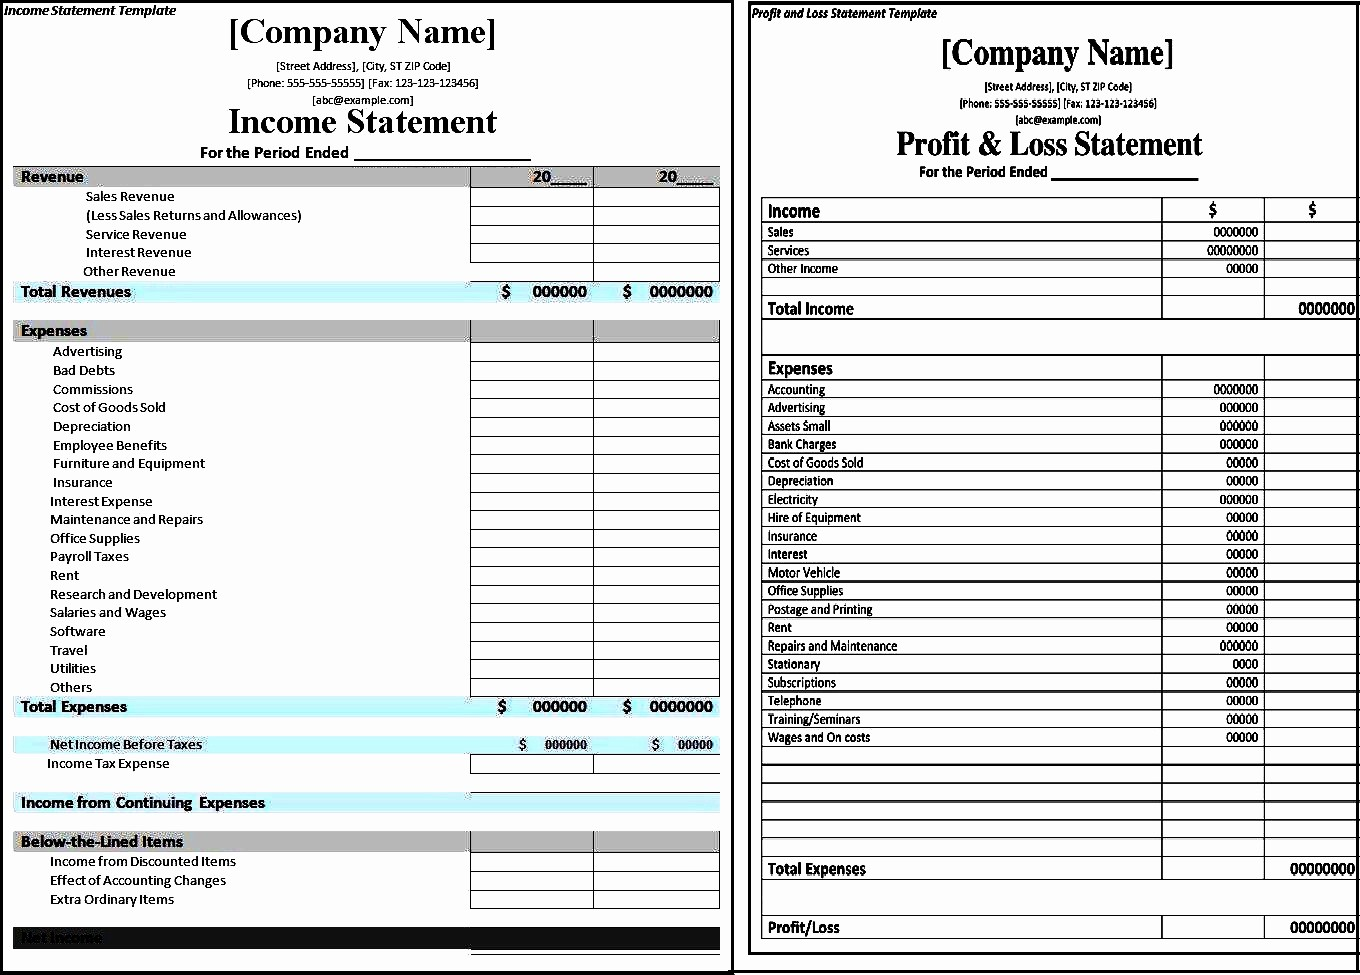 Profit Loss Statement Excel Template Fresh Profit and Loss Statement Template Excel